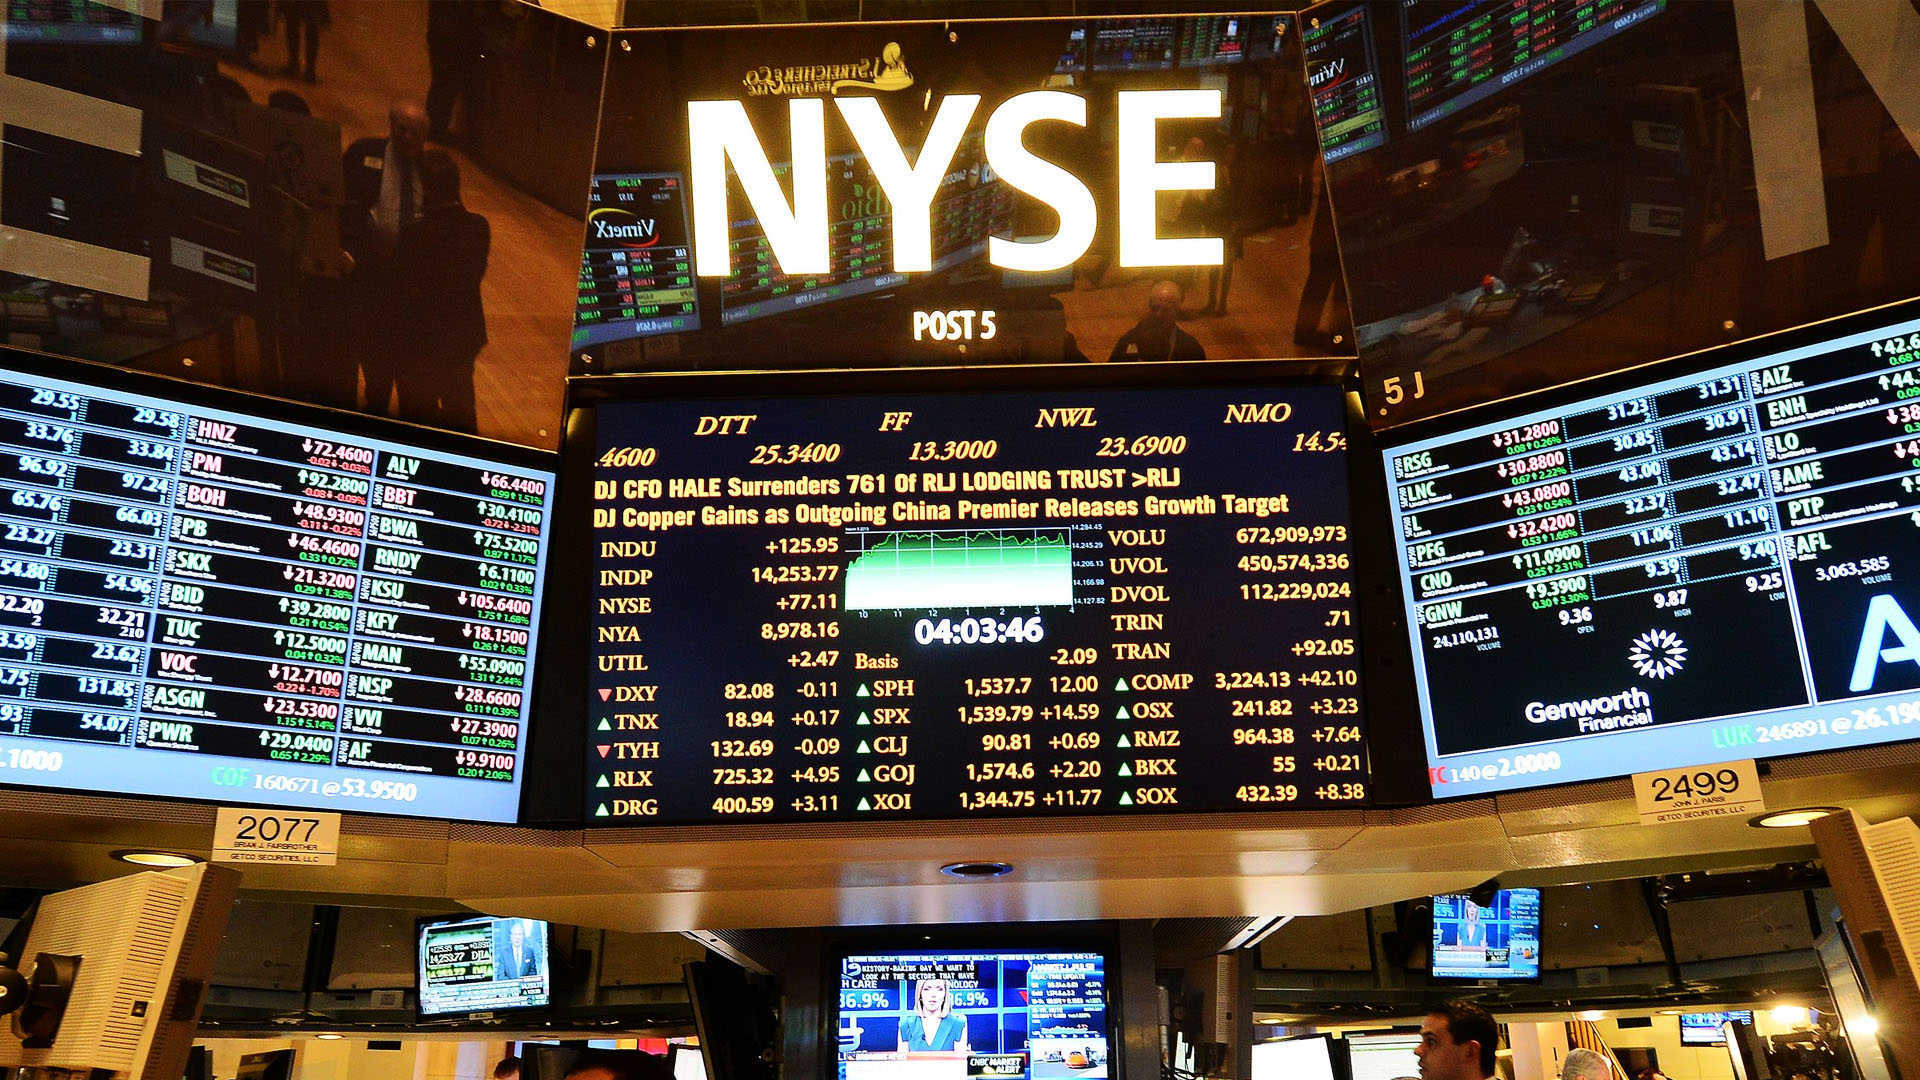 The New York Stock Exchange is the largest Gambling Casino in the world.